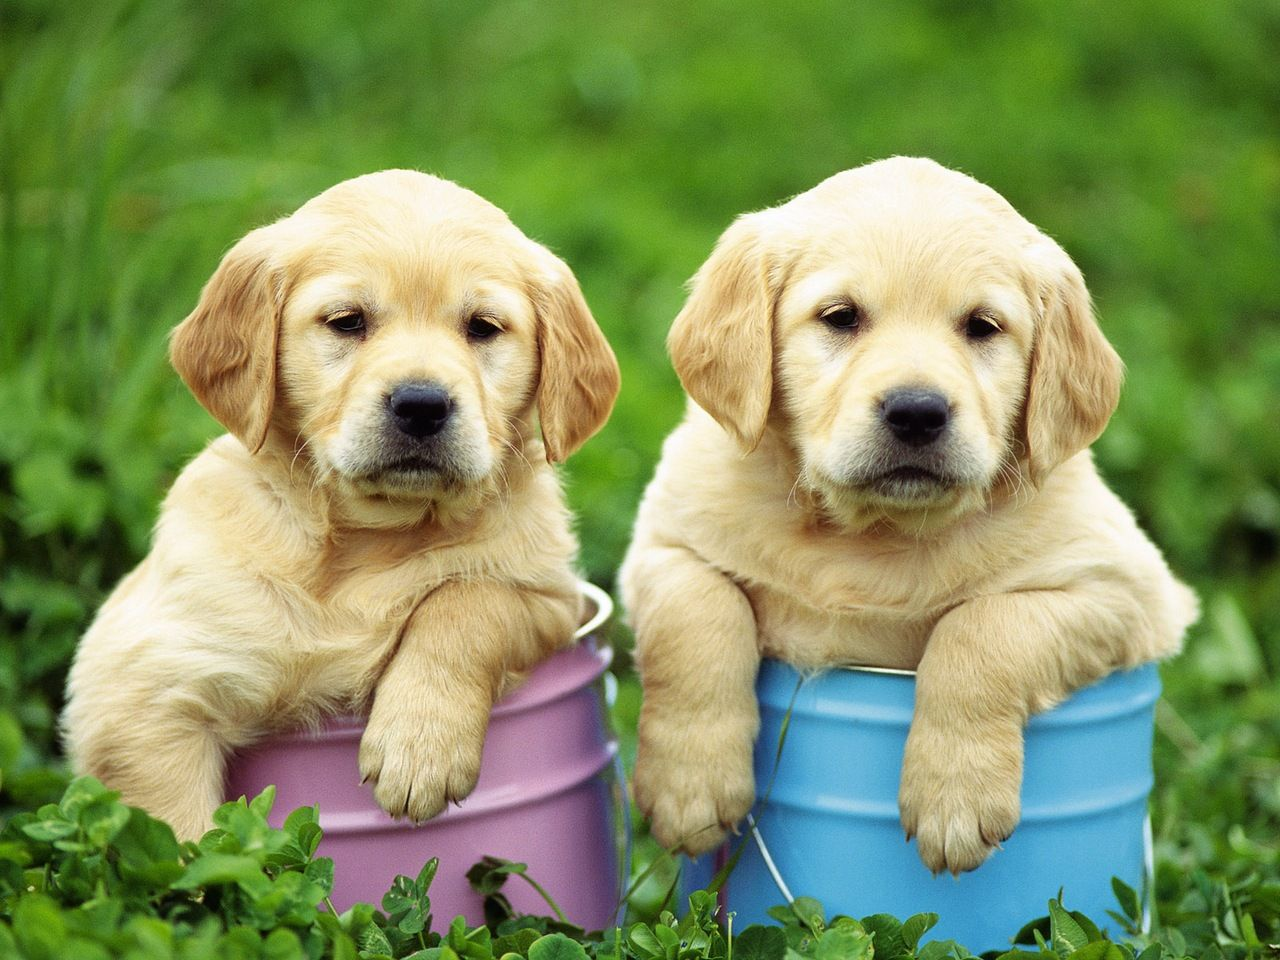 Two Dogs Animals Wallpaper Labrador Retriever Labrador Retriever Dog Yellow Labrador Puppy